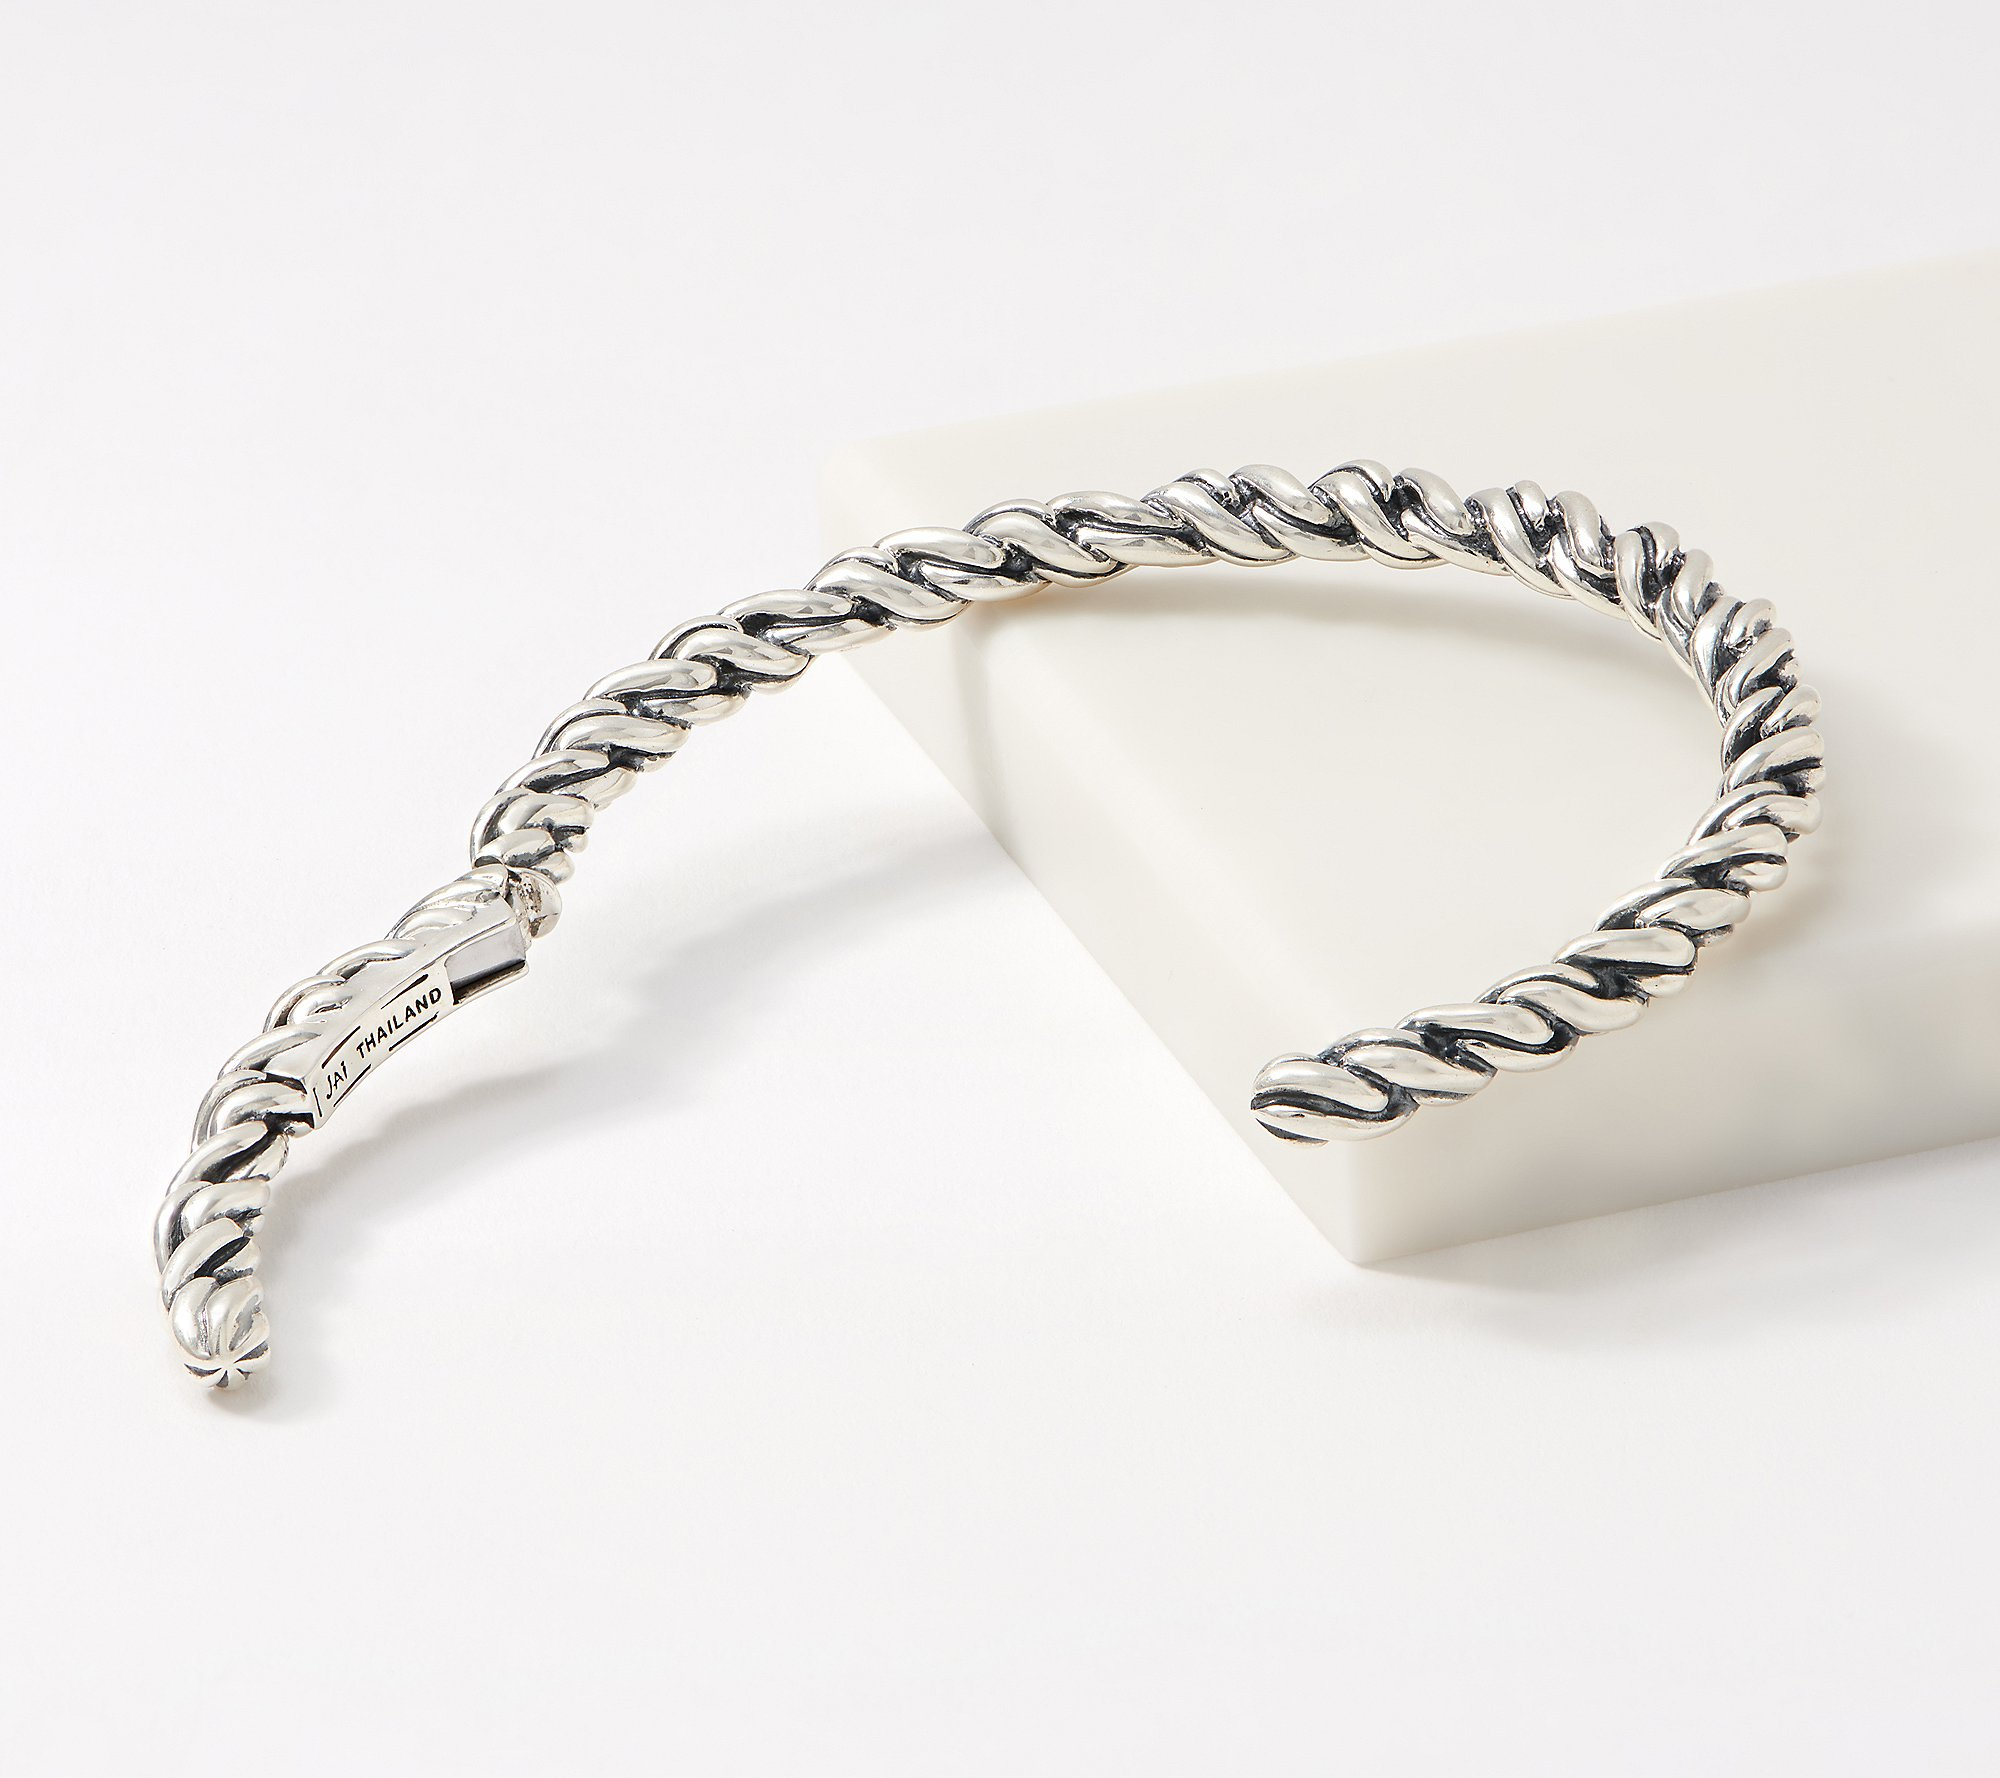 Sterling Silver Horse Herd Squeeze Latch Bangle Bracelet